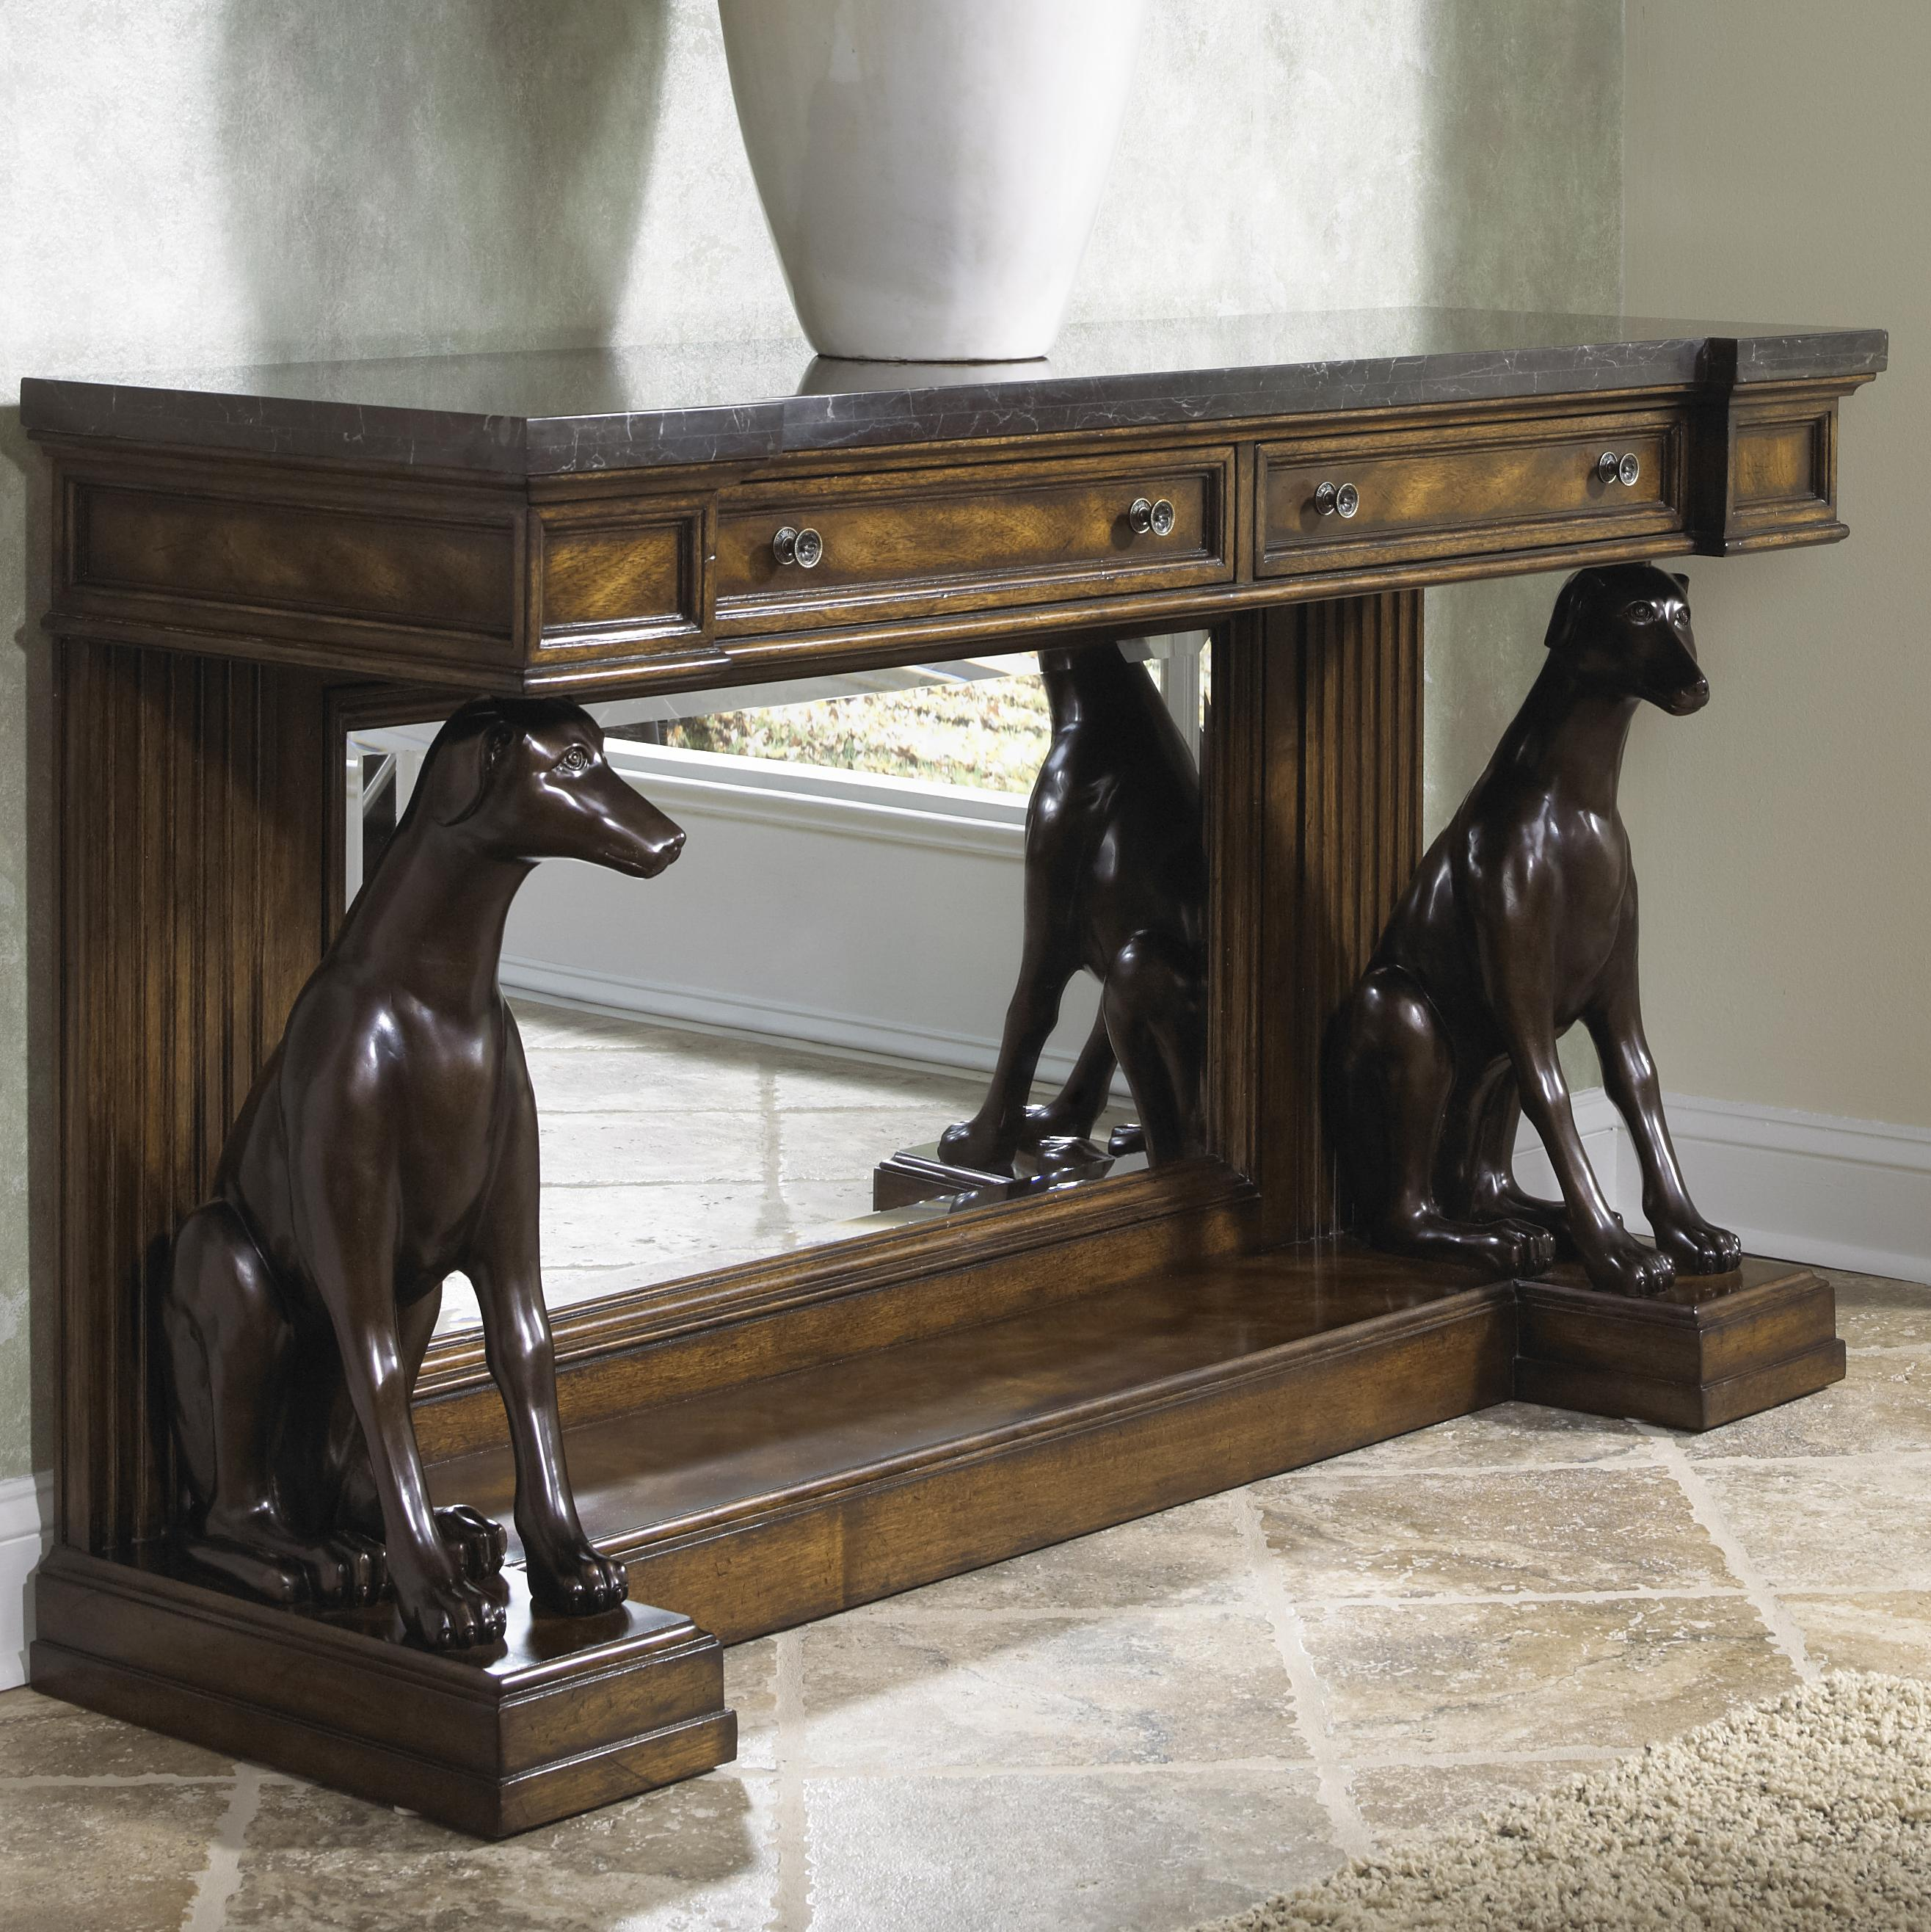 Traditional Antique Console Table with Marble Top and Greyhounds by